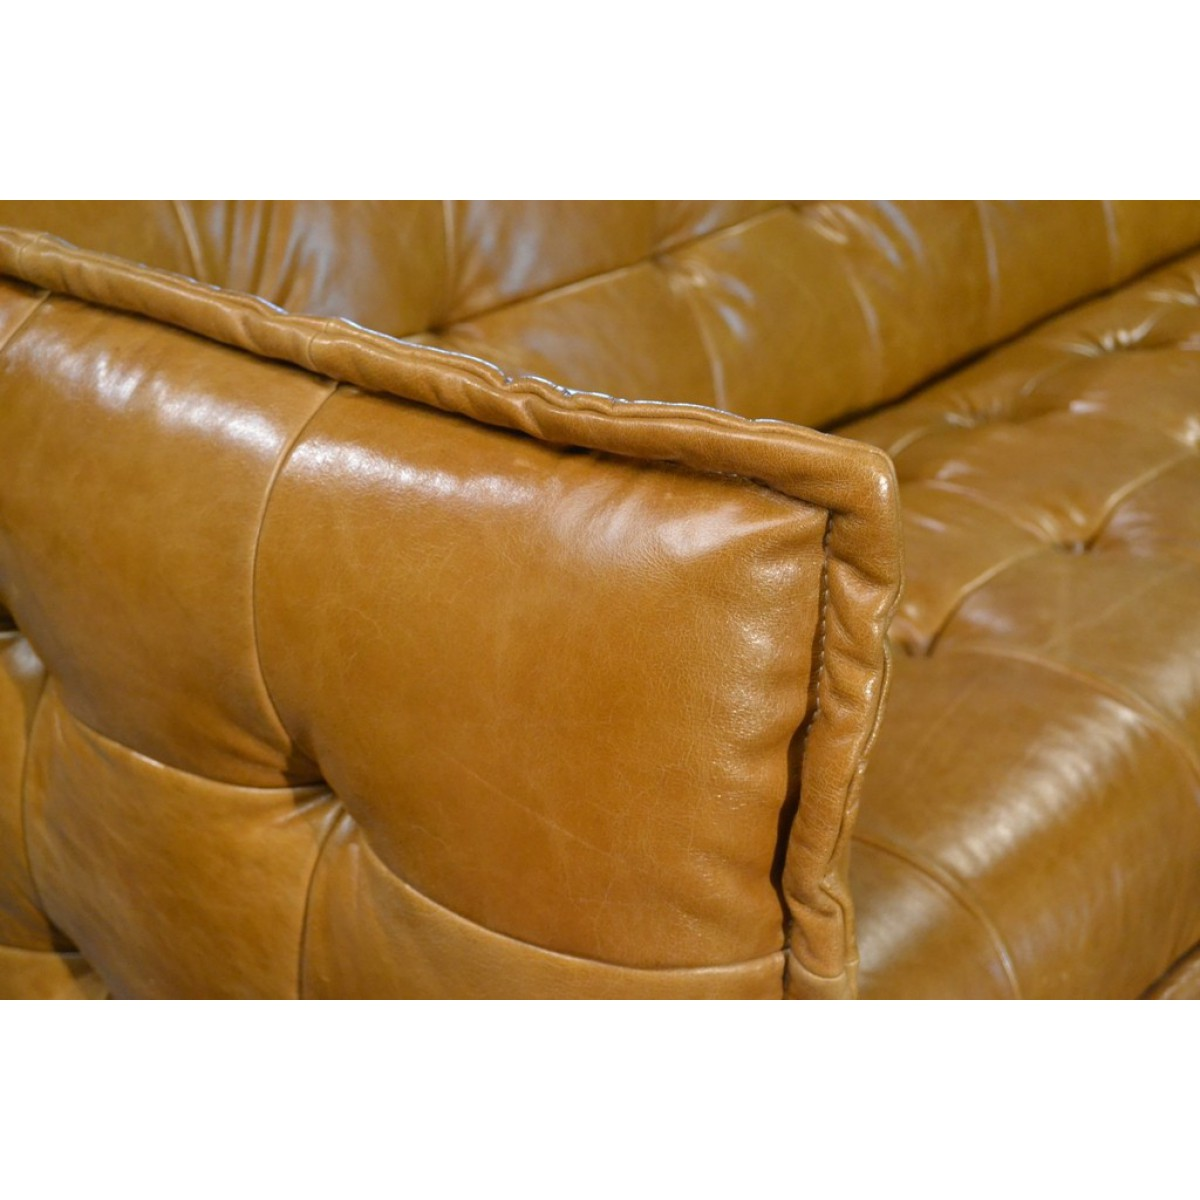 bank_slimm_jim_patch_work_leder_leer_da_silva_tabacco_cognac_tom_club_easy_sofa_detail_arm